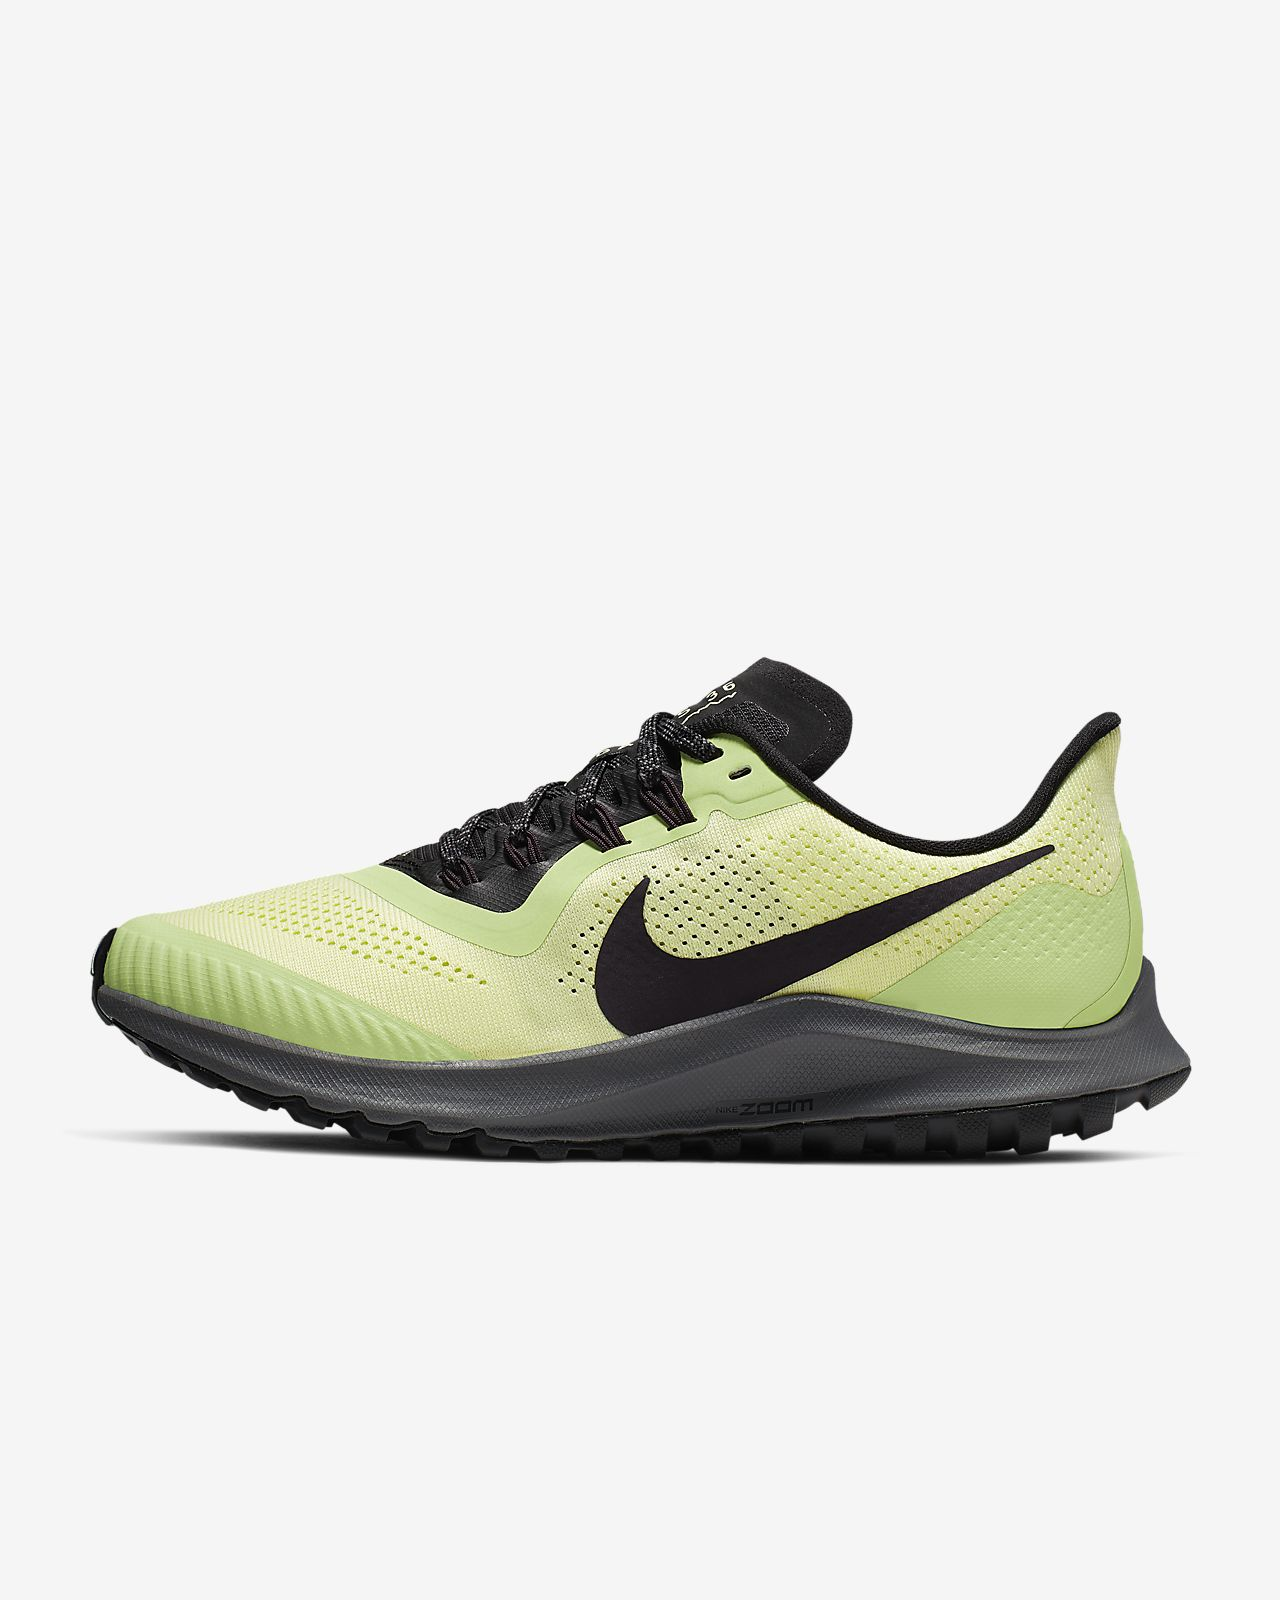 best service b4f4c 19122 Chaussure de running Nike Air Zoom Pegasus 36 Trail pour Femme. Nike ...